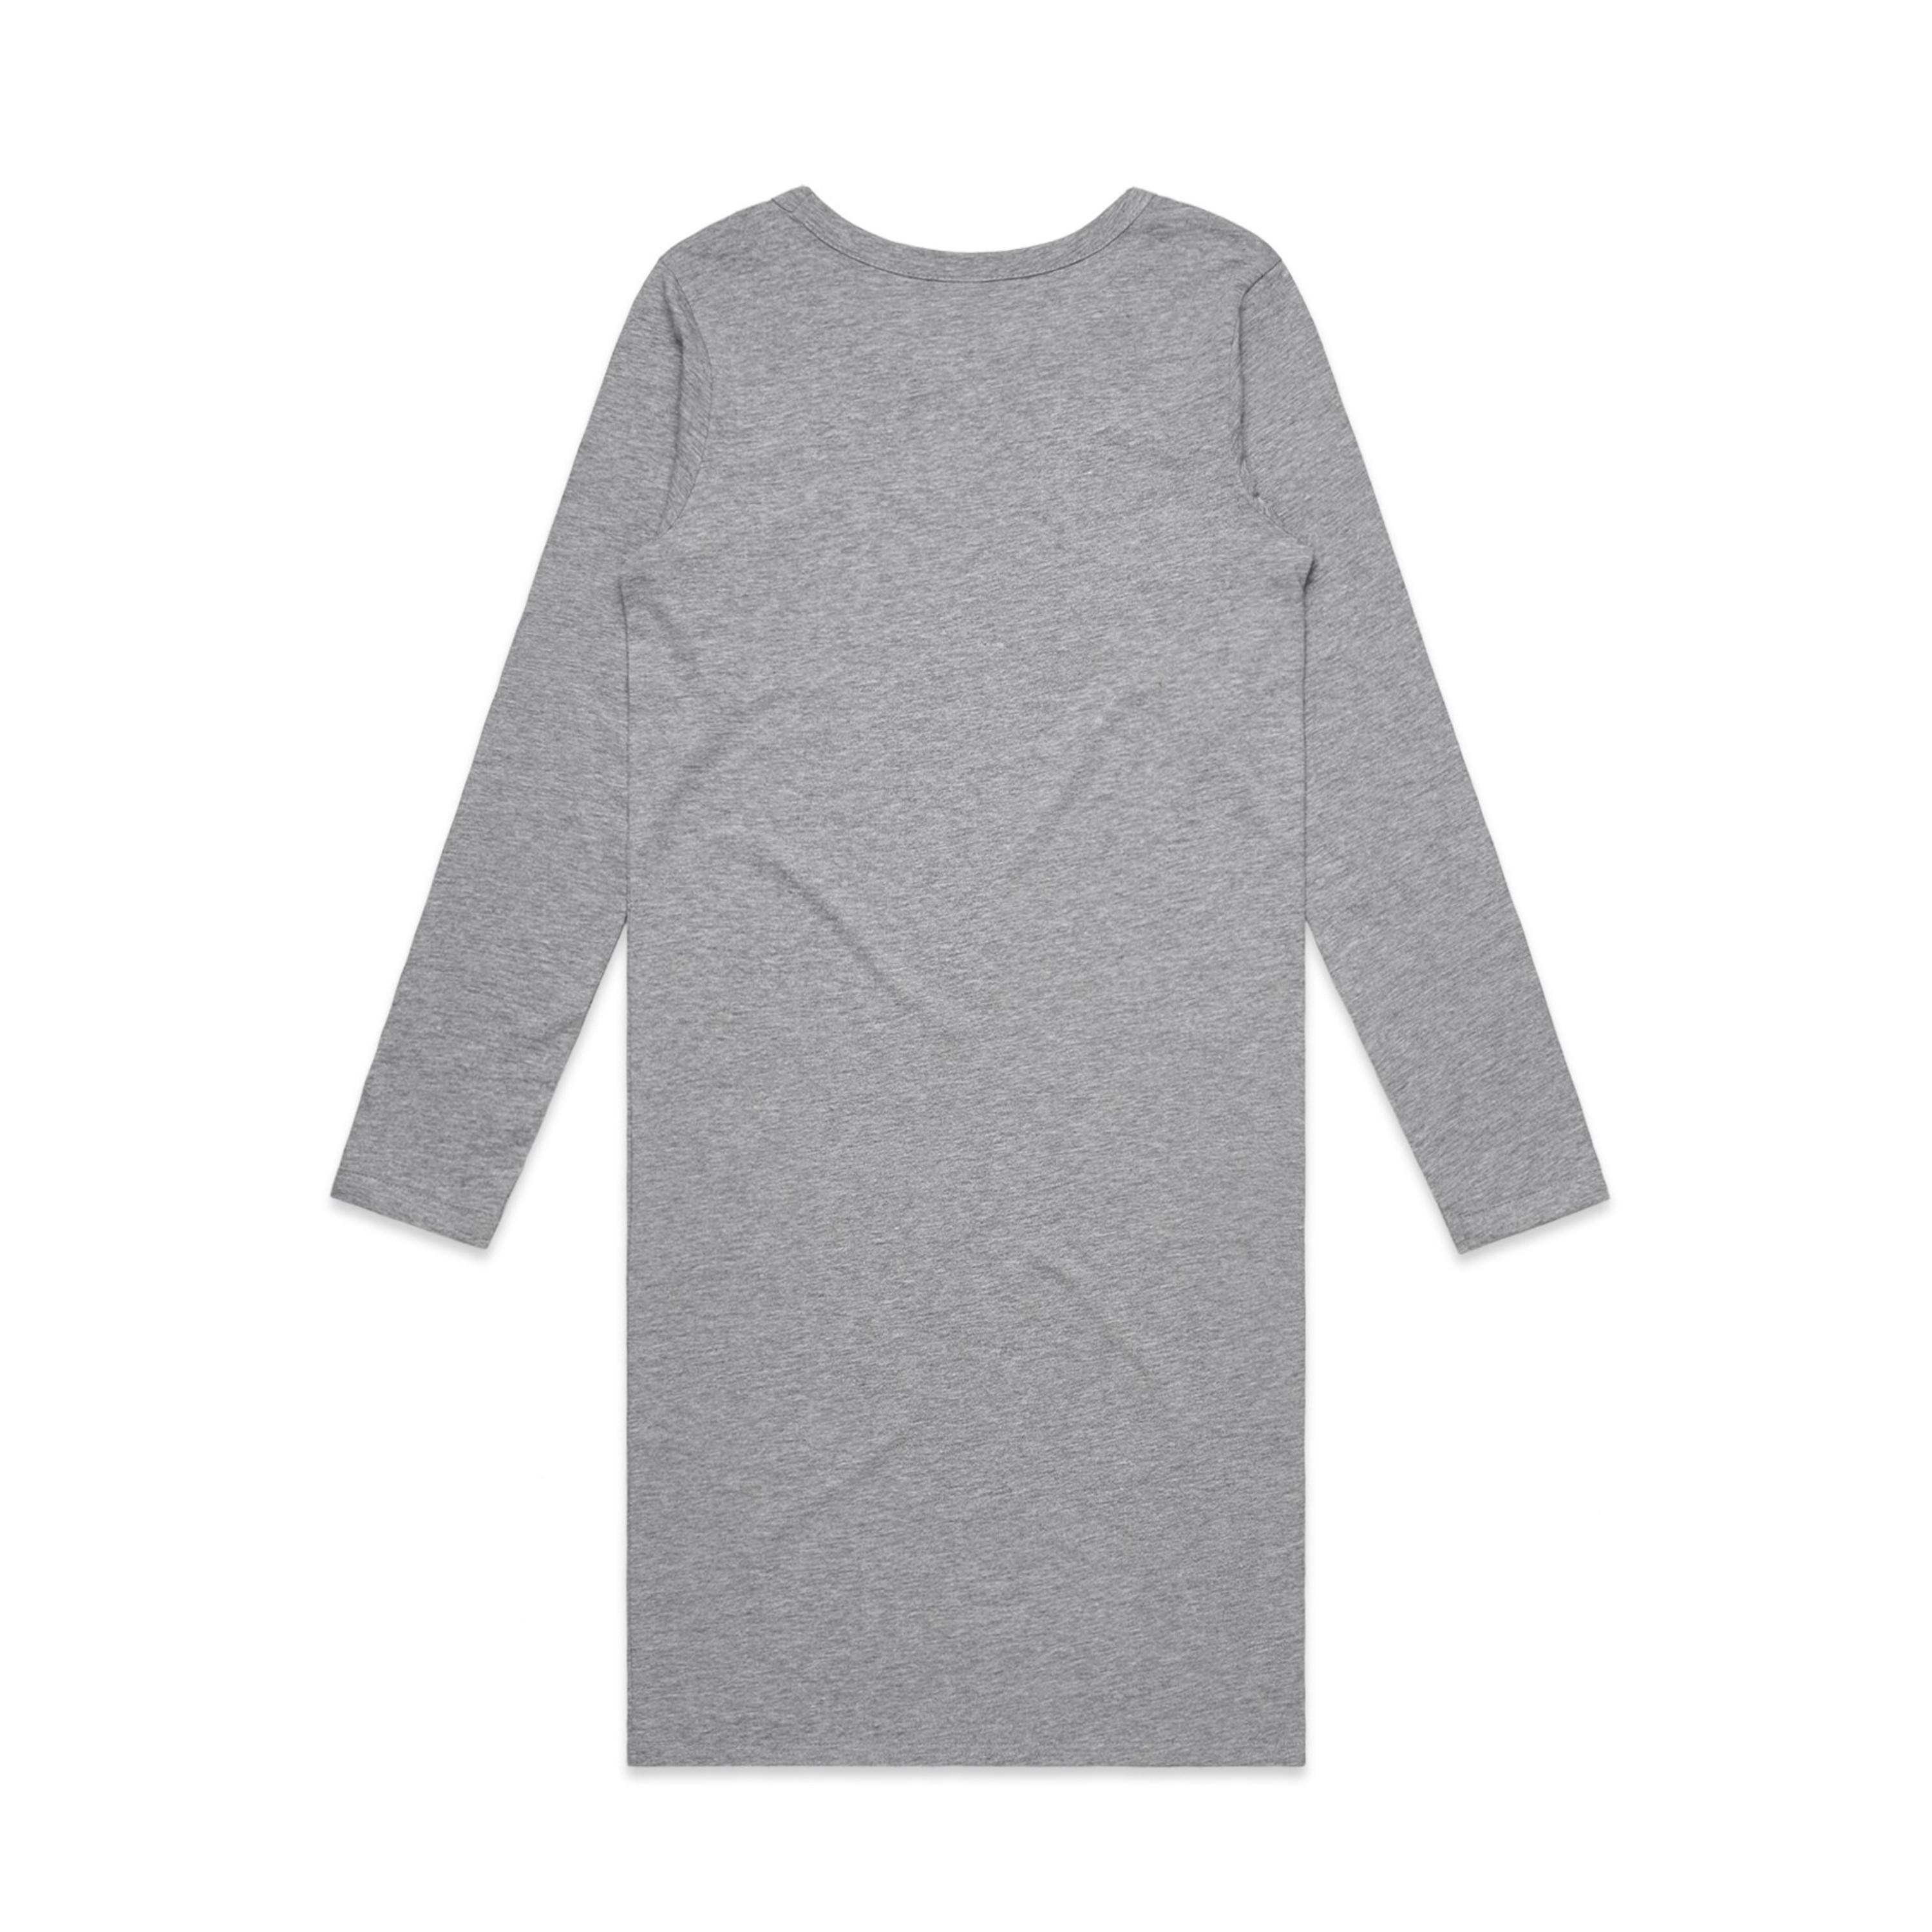 GREY MARLE - BACK